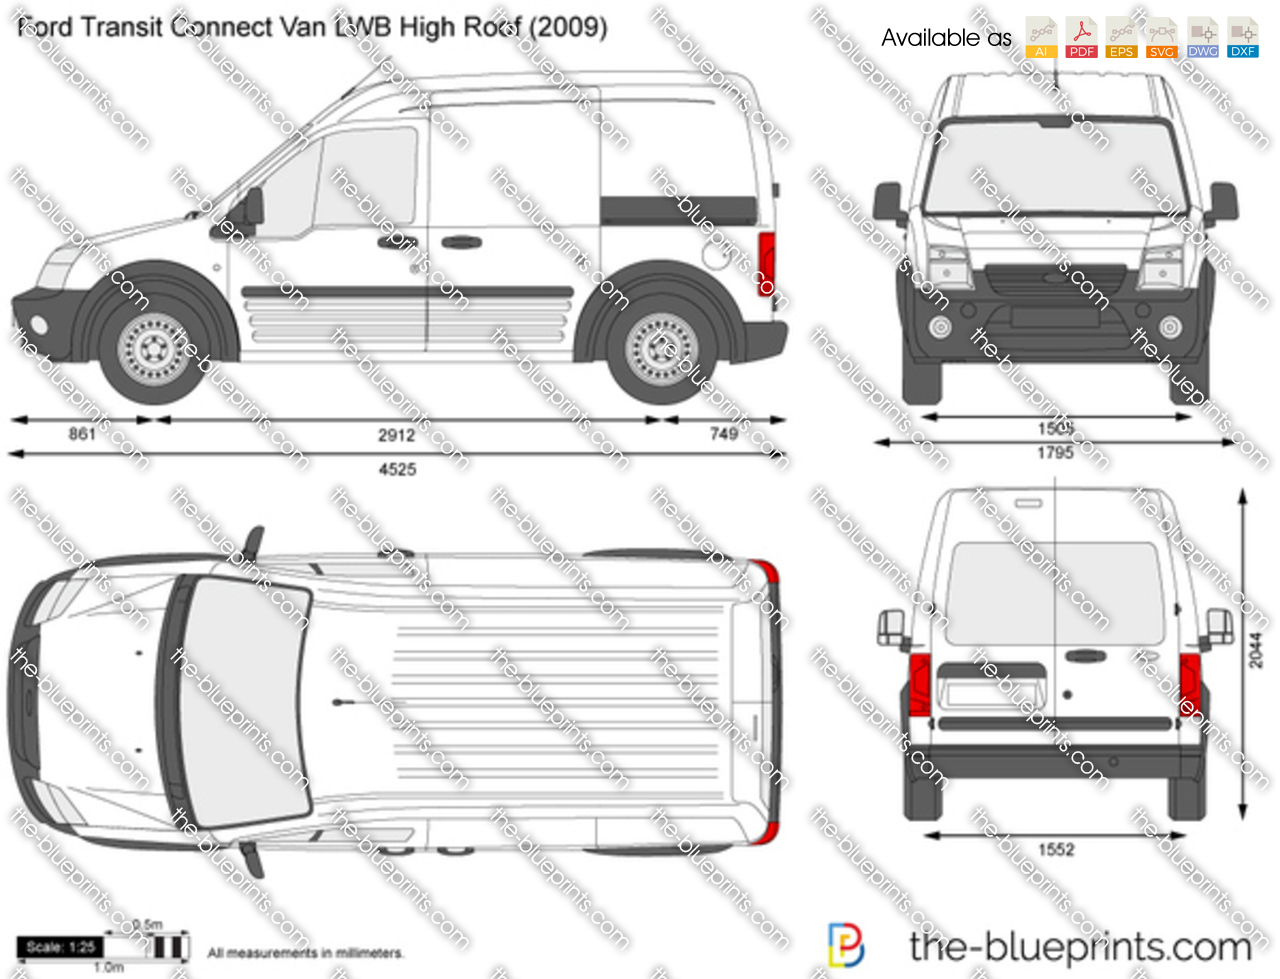 Ford Transit Connect Van LWB High Roof 2006